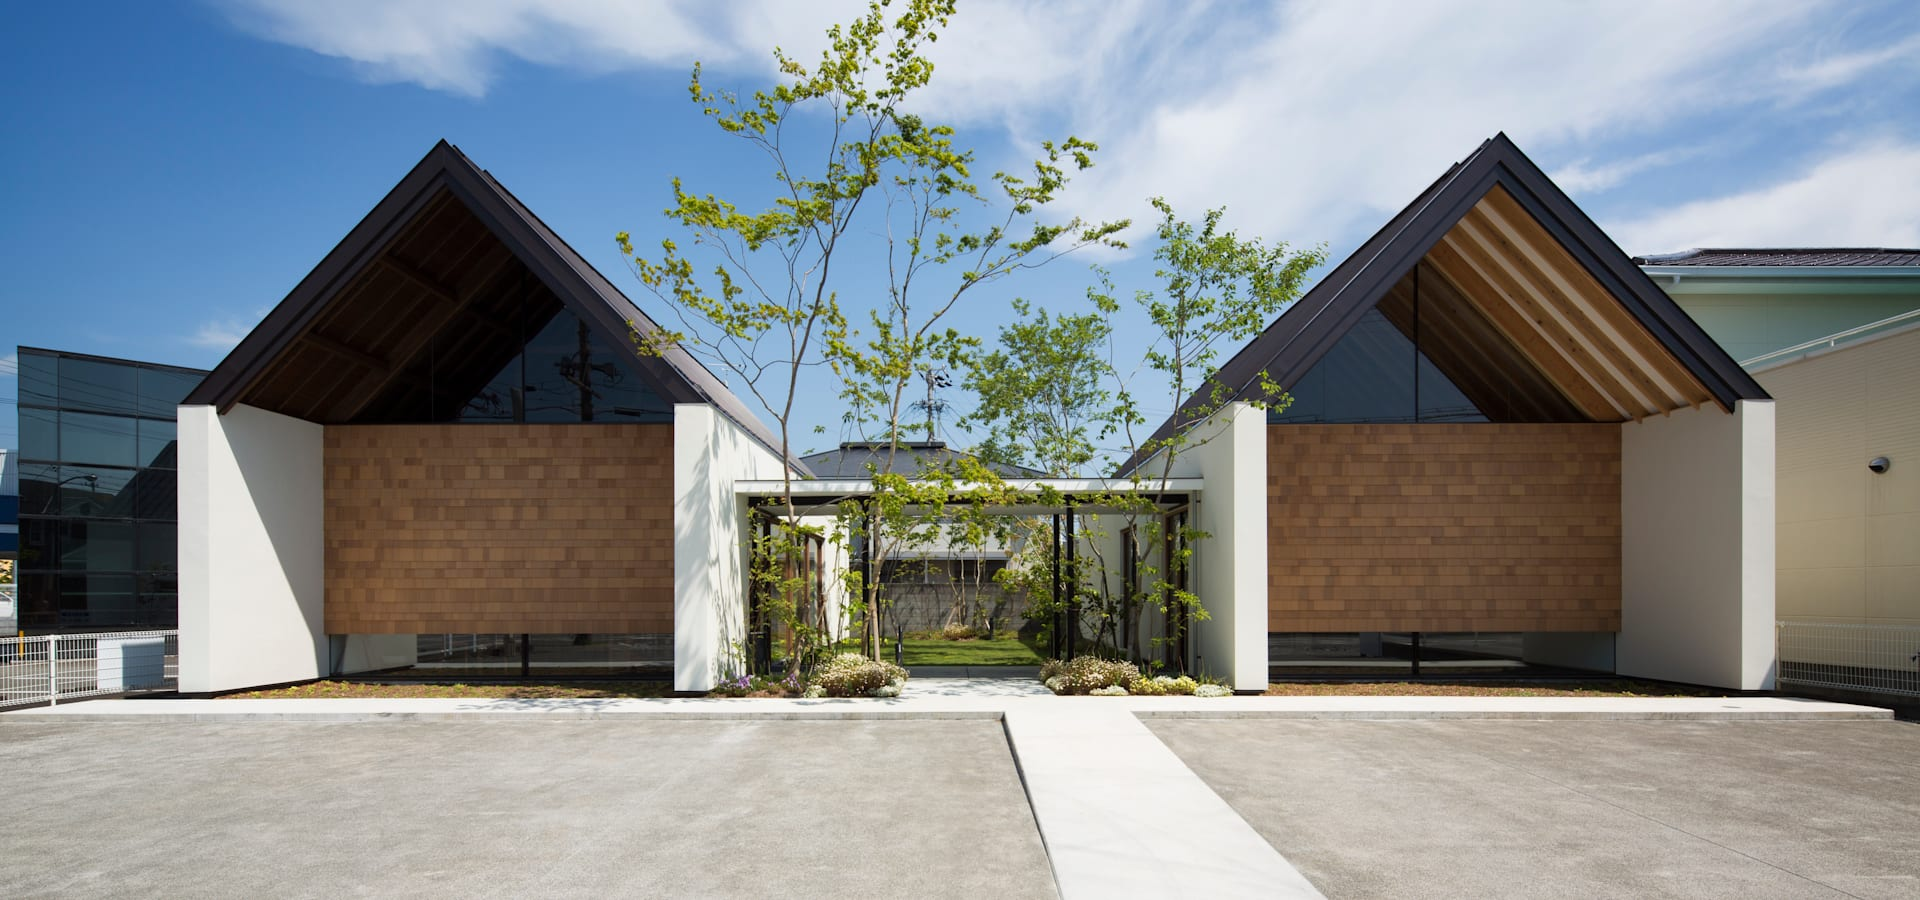 TRANSTYLE architects